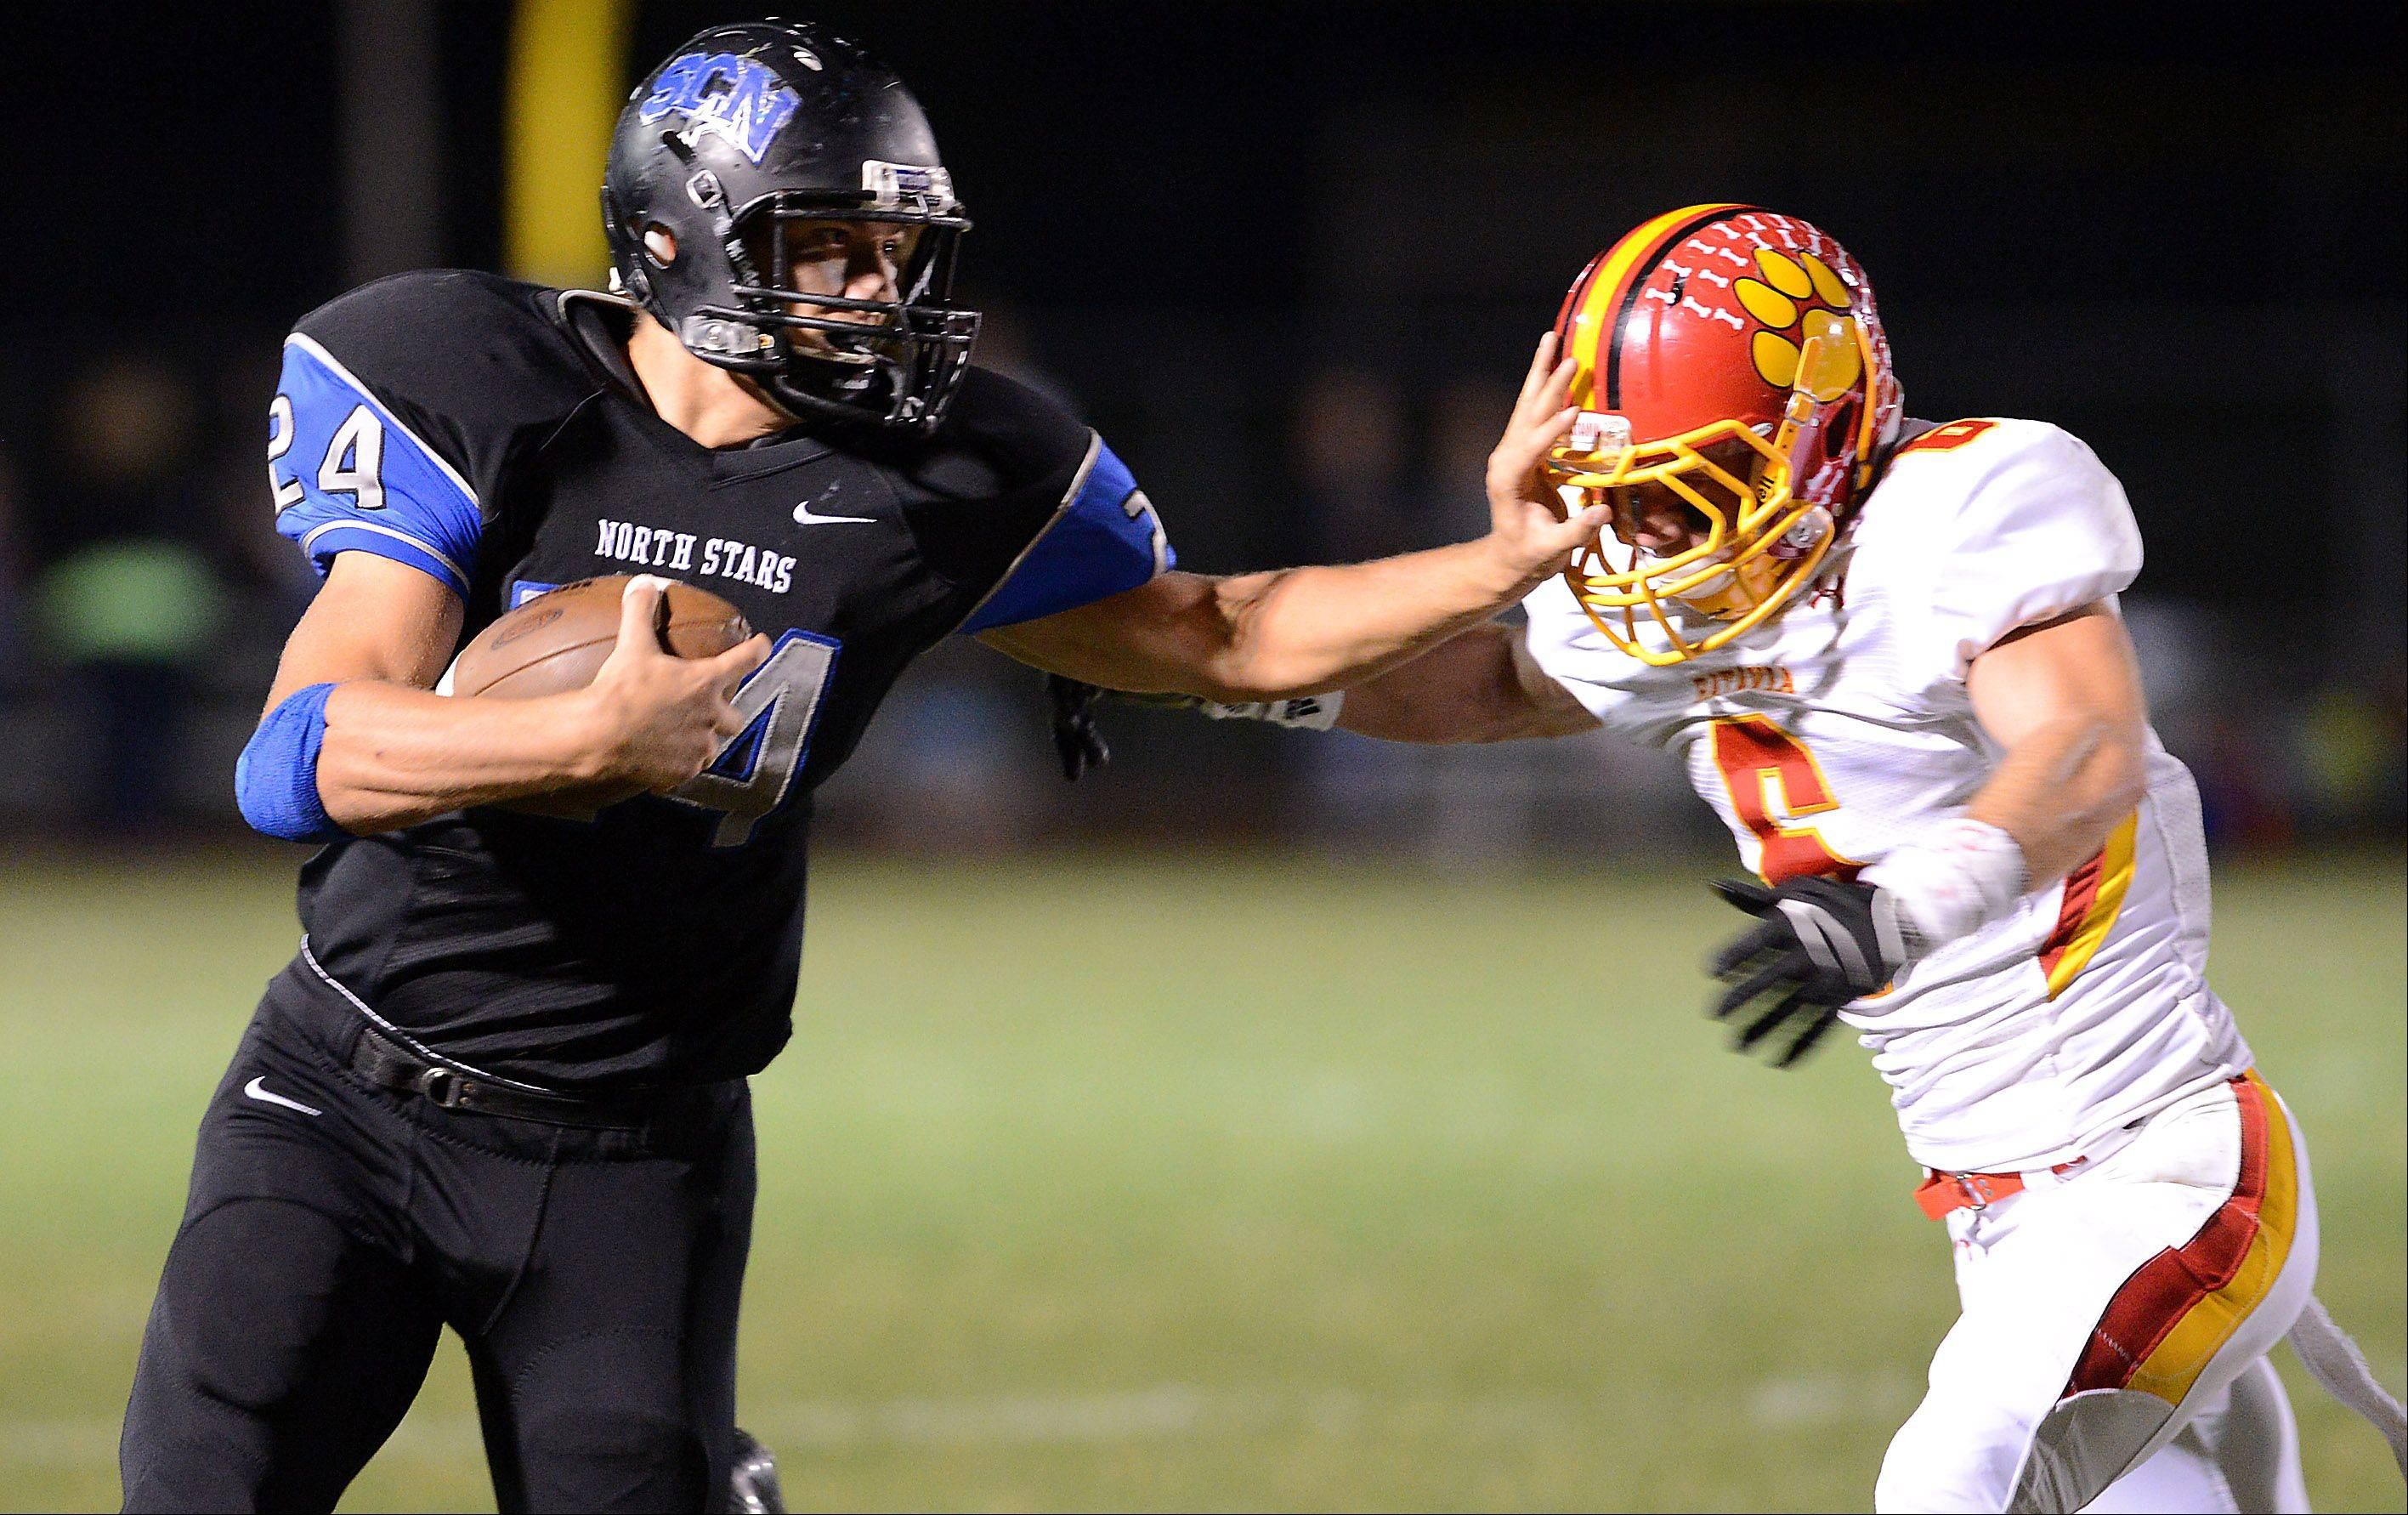 St. Charles North's Evan Kurtz stiff-arms Batavia's Rourke Mullins at the end of a 30-yard run.